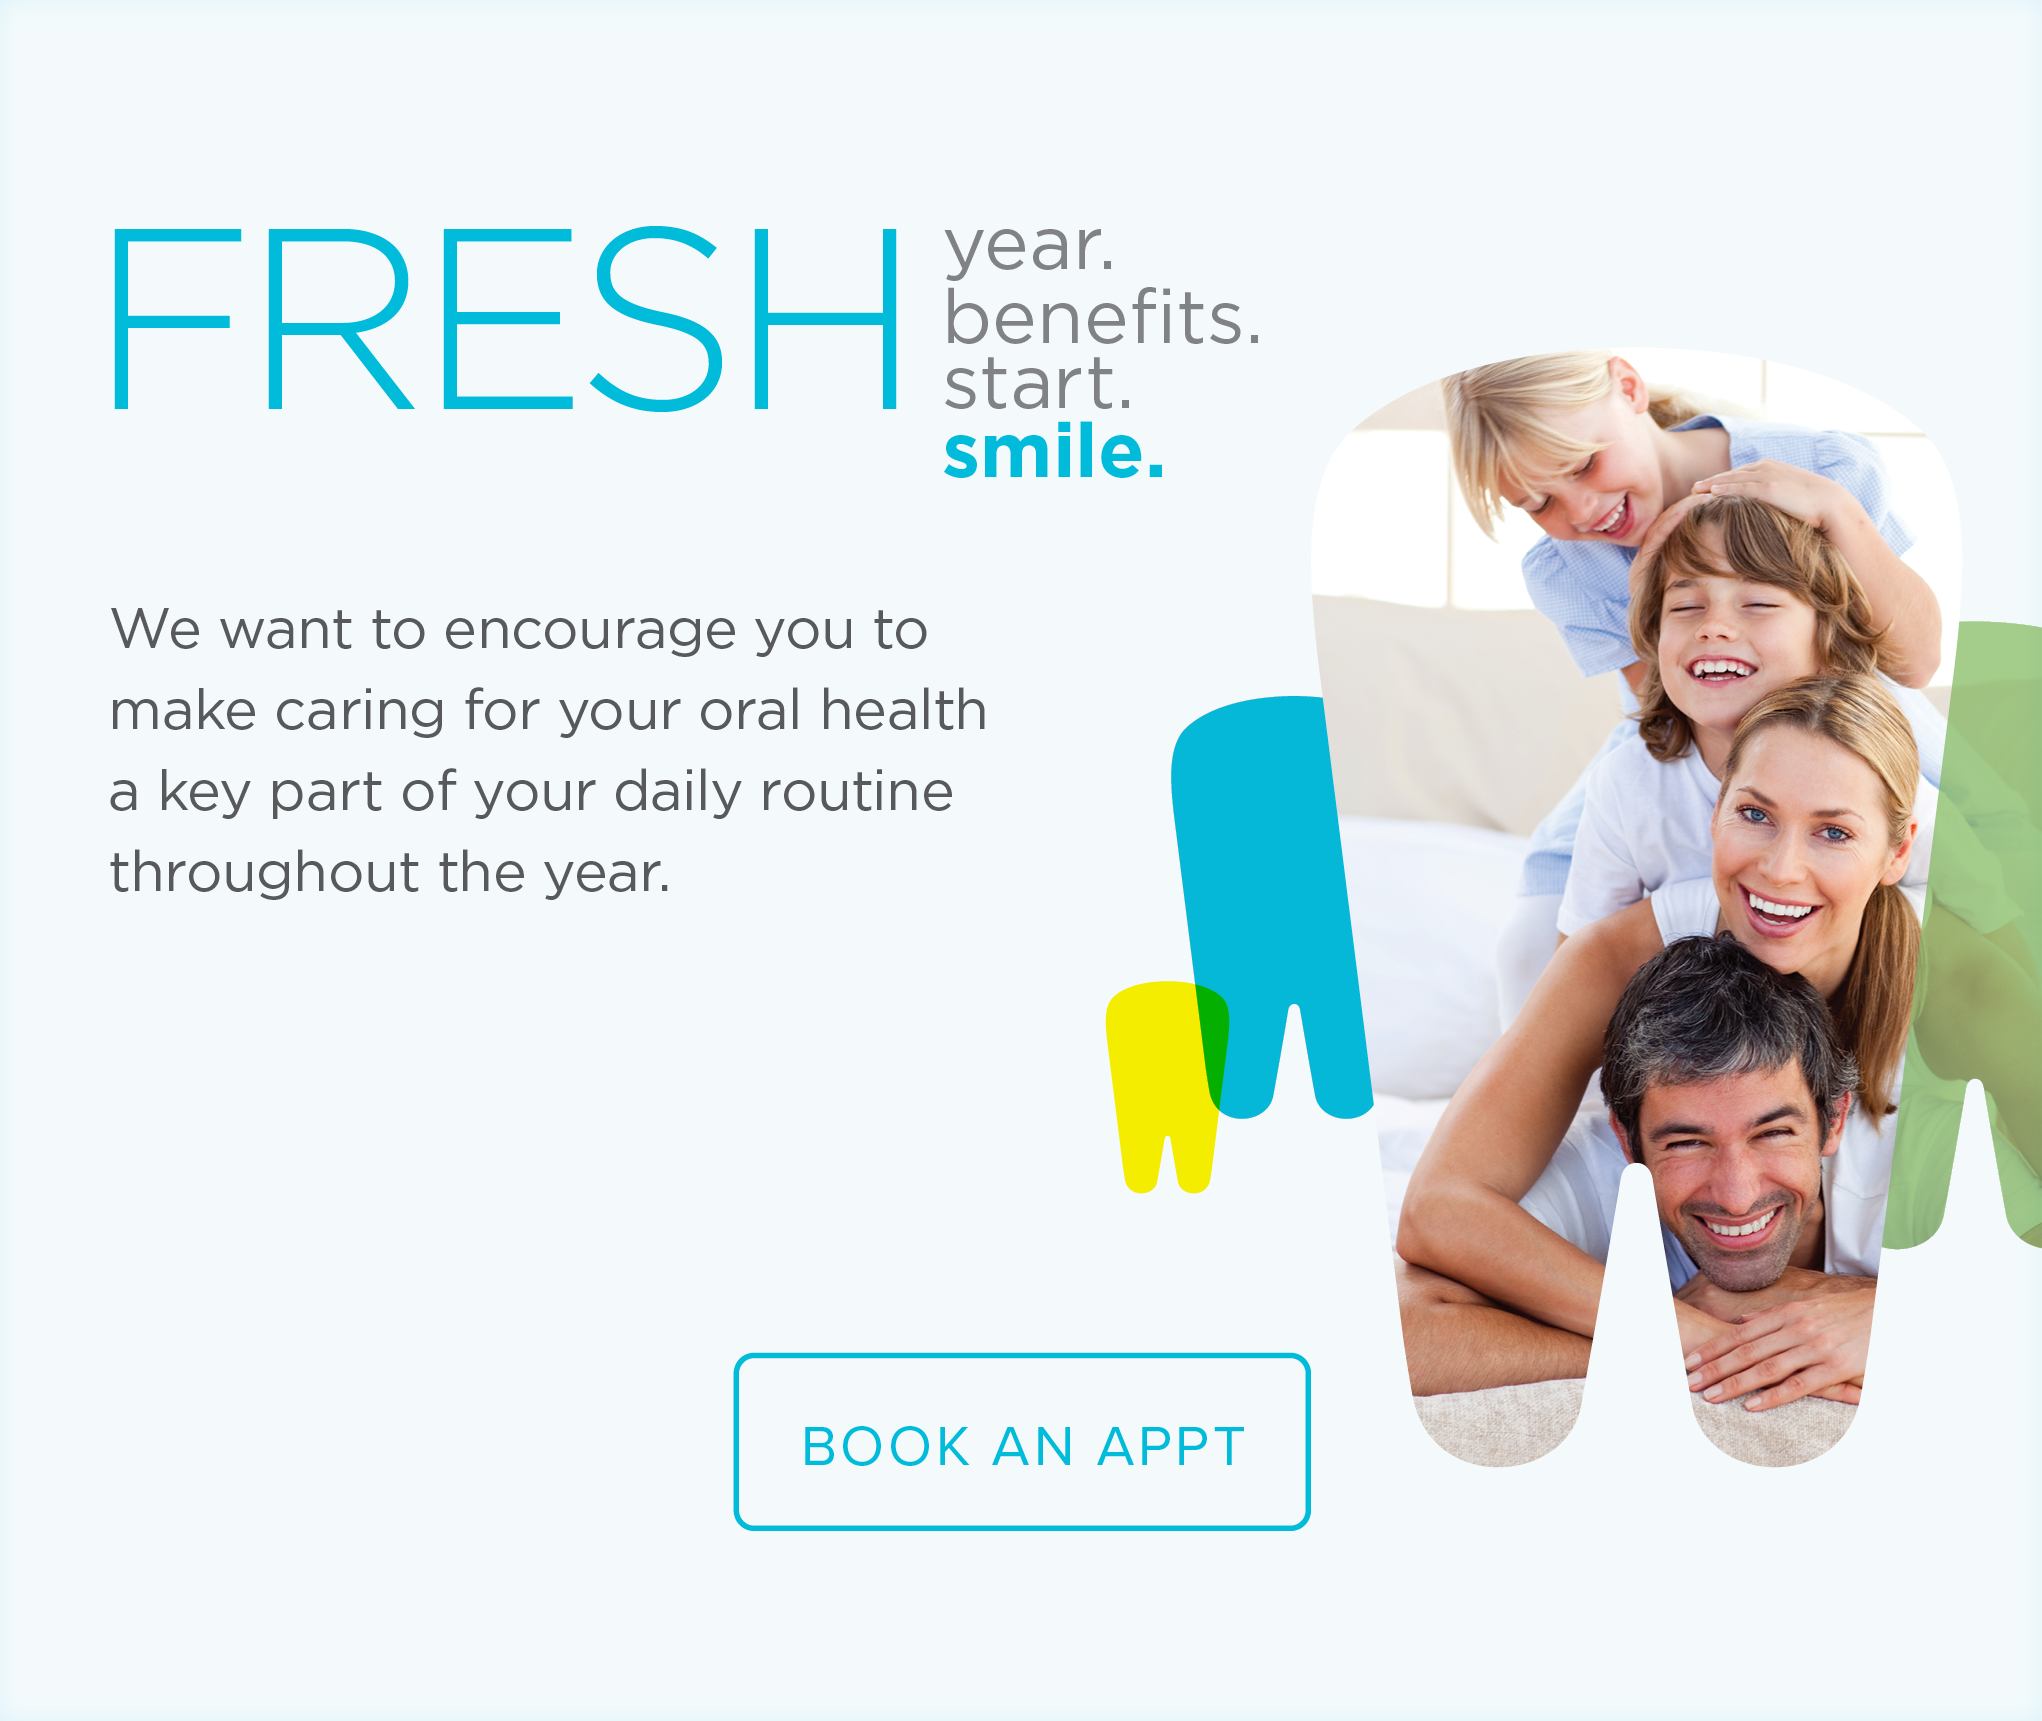 Henderson Dental Group and Orthodontics - Make the Most of Your Benefits